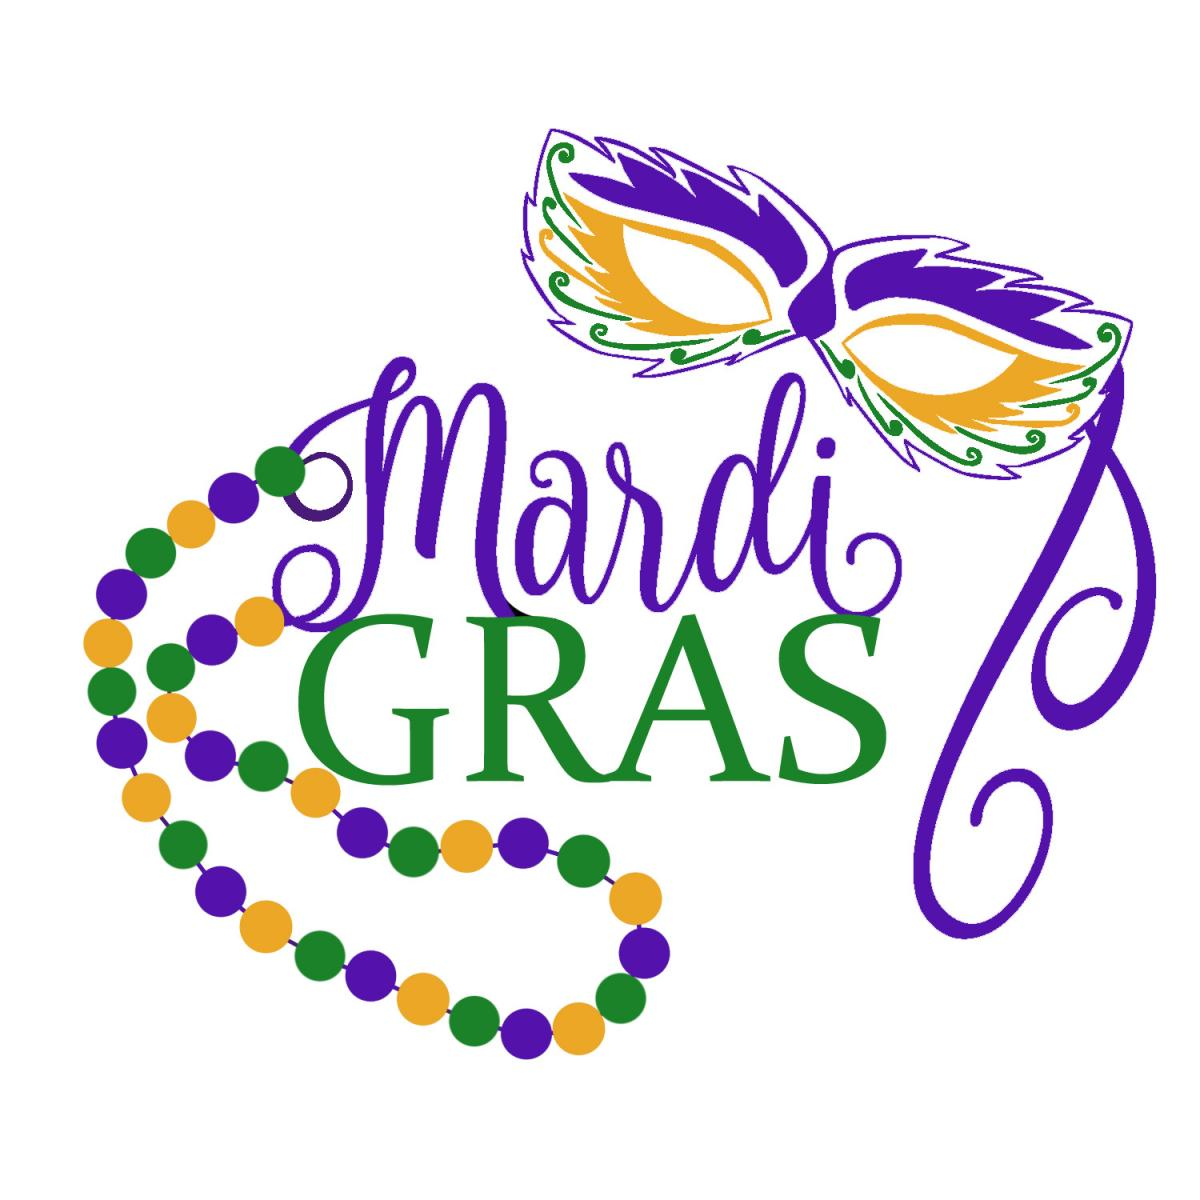 Happy mardi gras clipart graphic royalty free download Mardi gras united way of calvert county clipart - ClipartBarn graphic royalty free download